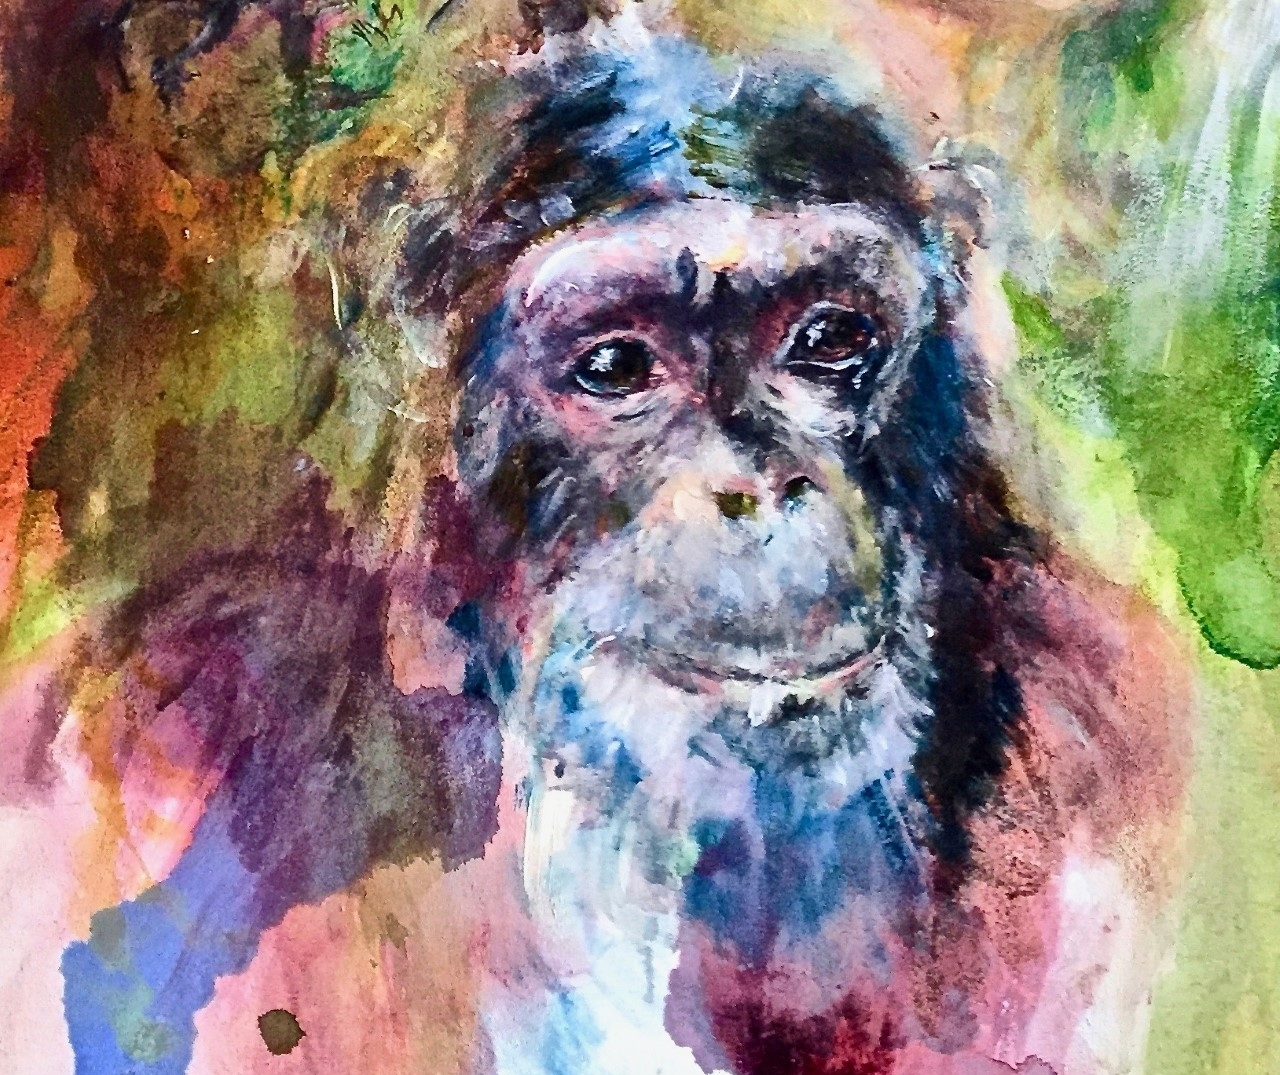 A Dear Old Friend - In her recent exhibition ALL COLOURS, Daniela partnered with the Jane Goodall Institute, Deutschland. donating 20% of sales to the JGI's Roots & Shoots youth program to empower children to make a positive impact on the environment.Left: An Old Friend, watercolor on canvas, 2018. The painting features David Greybeard, the first chimpanzee to approach Jane Goodall in Gombe, Tanzania.See more about the exhibition here.